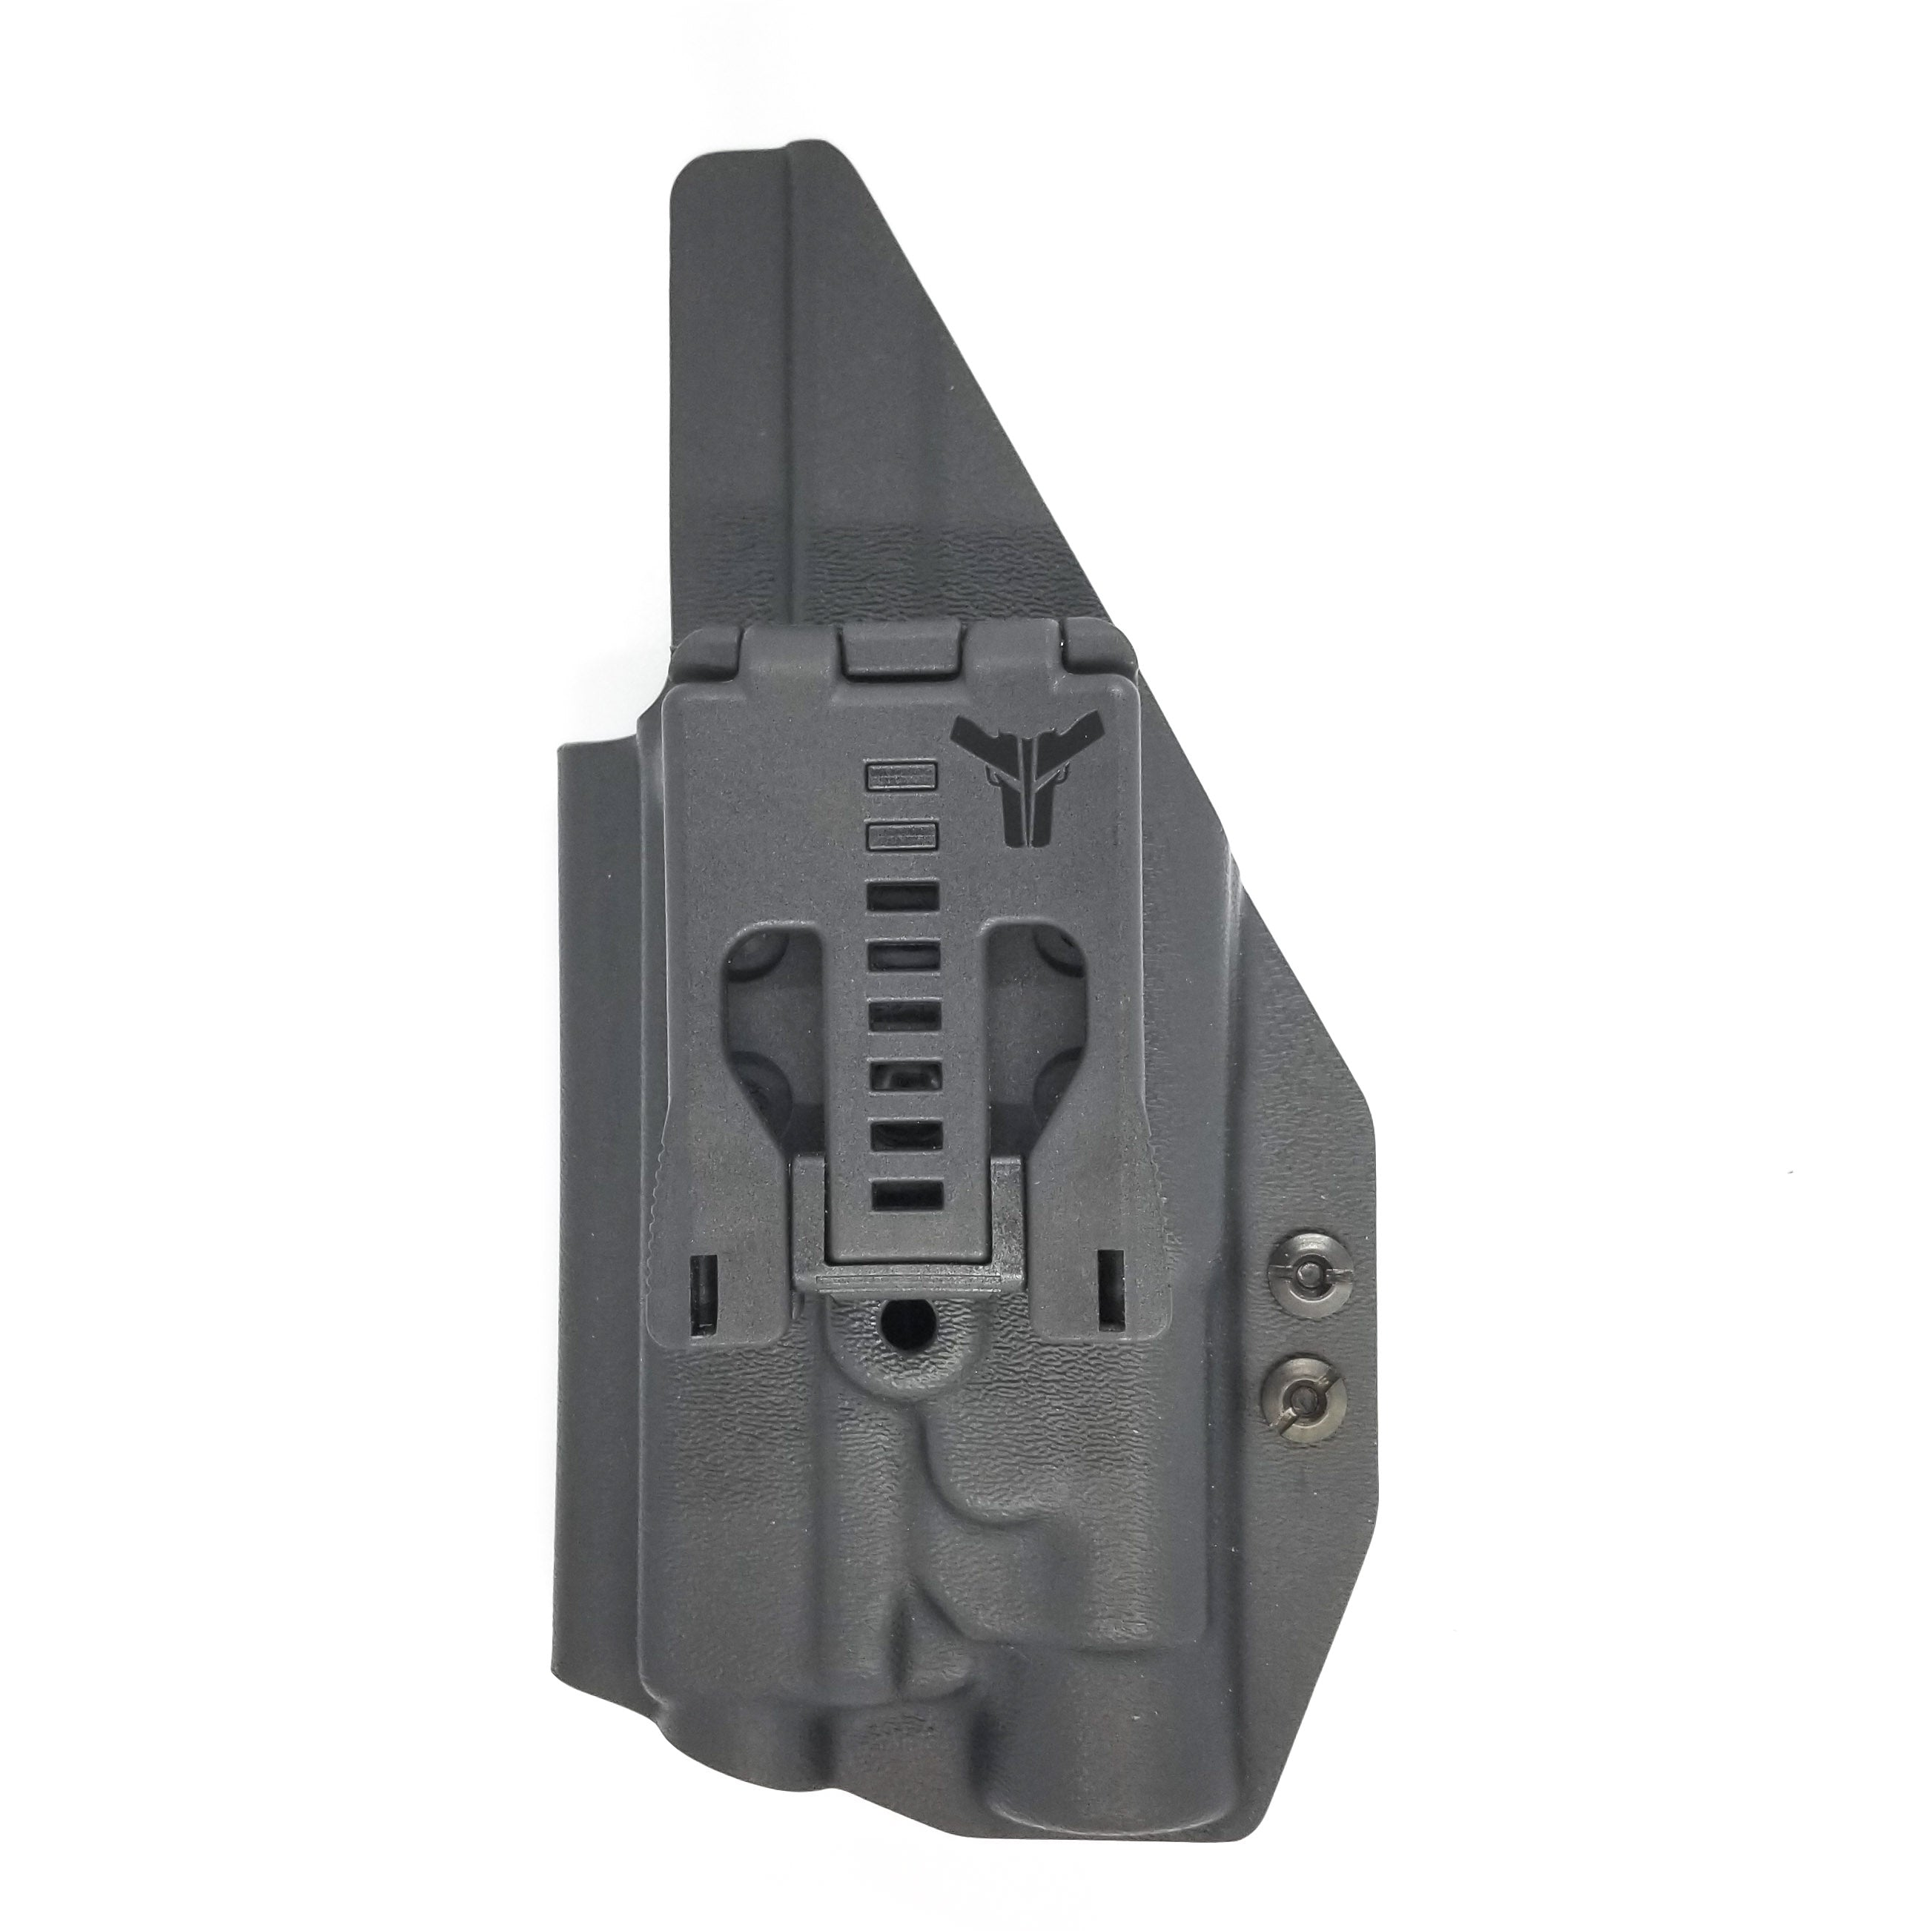 Polymer80 P940 & P940C with TLR-1 OWB Holster